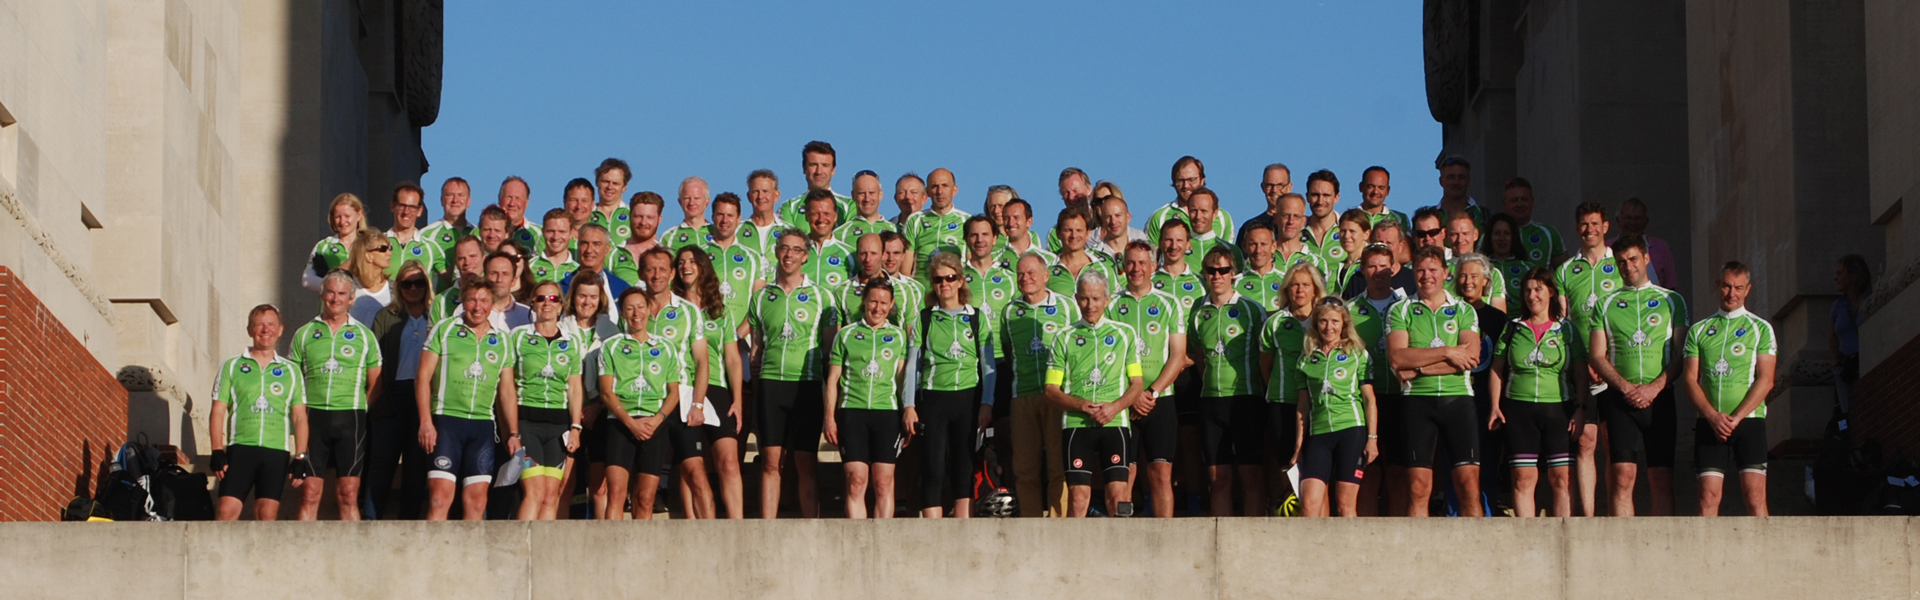 Groups | Green Jersey French Cycling Tours